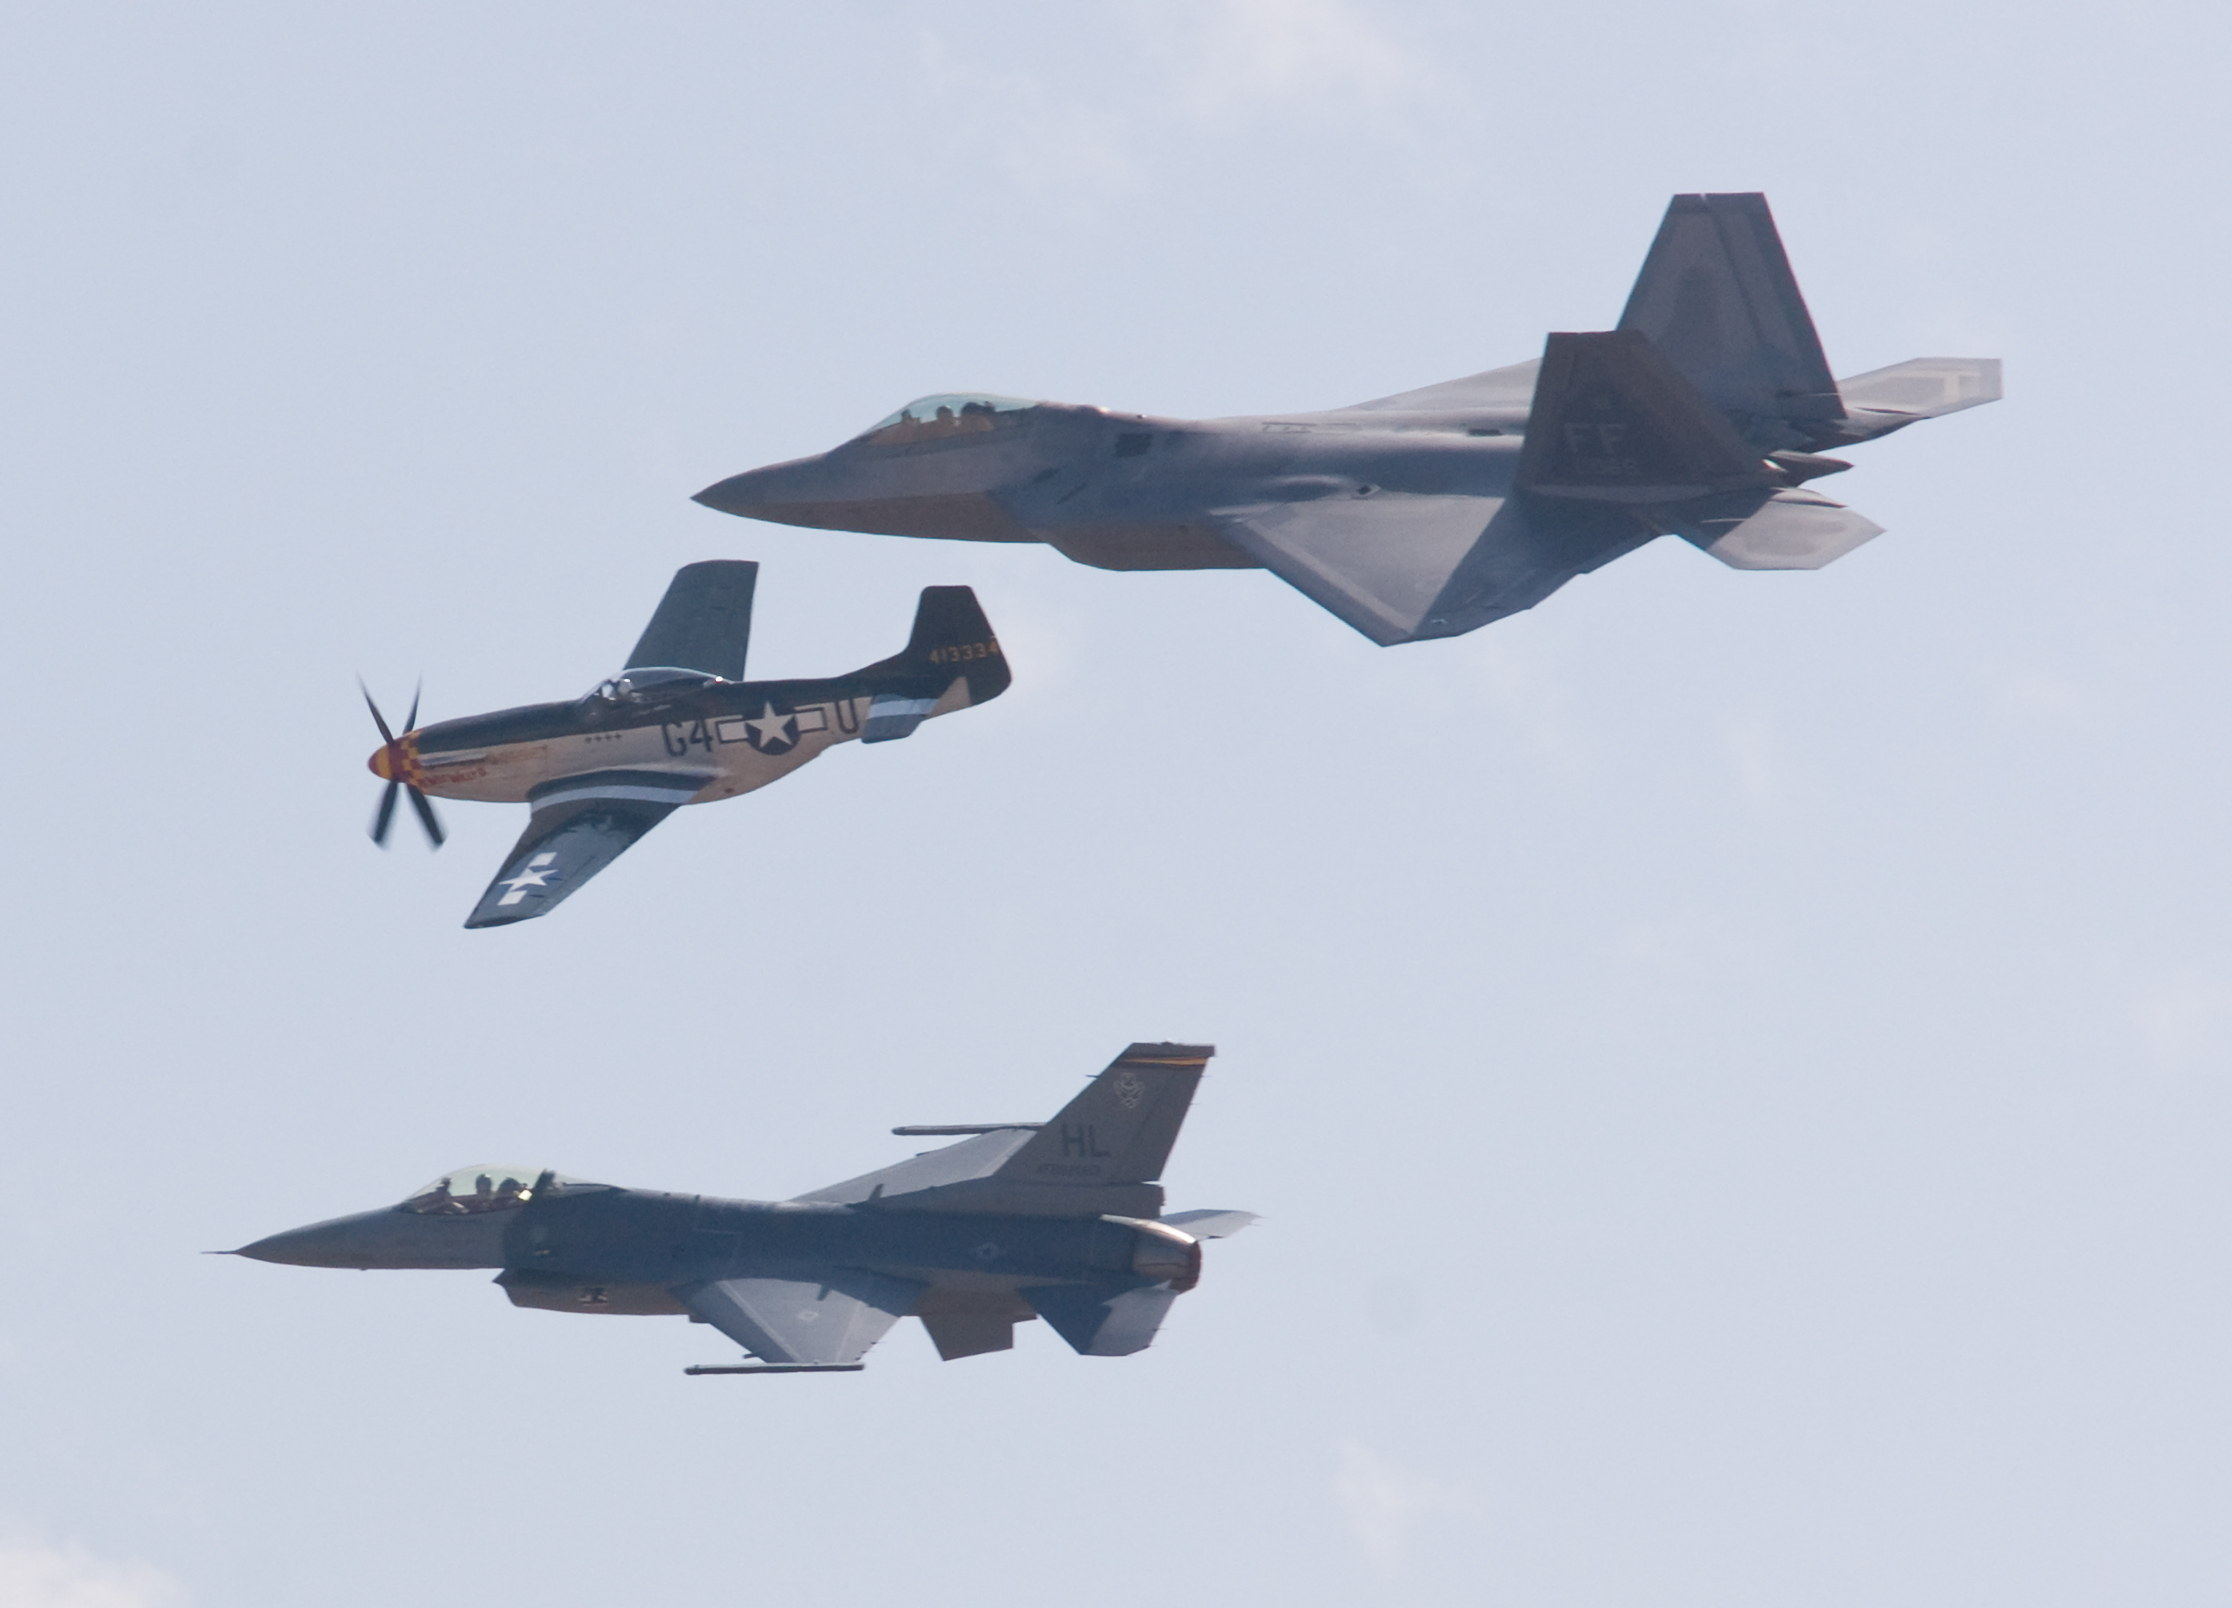 F-22 Raptor, F-16 Falcon, and Mustang